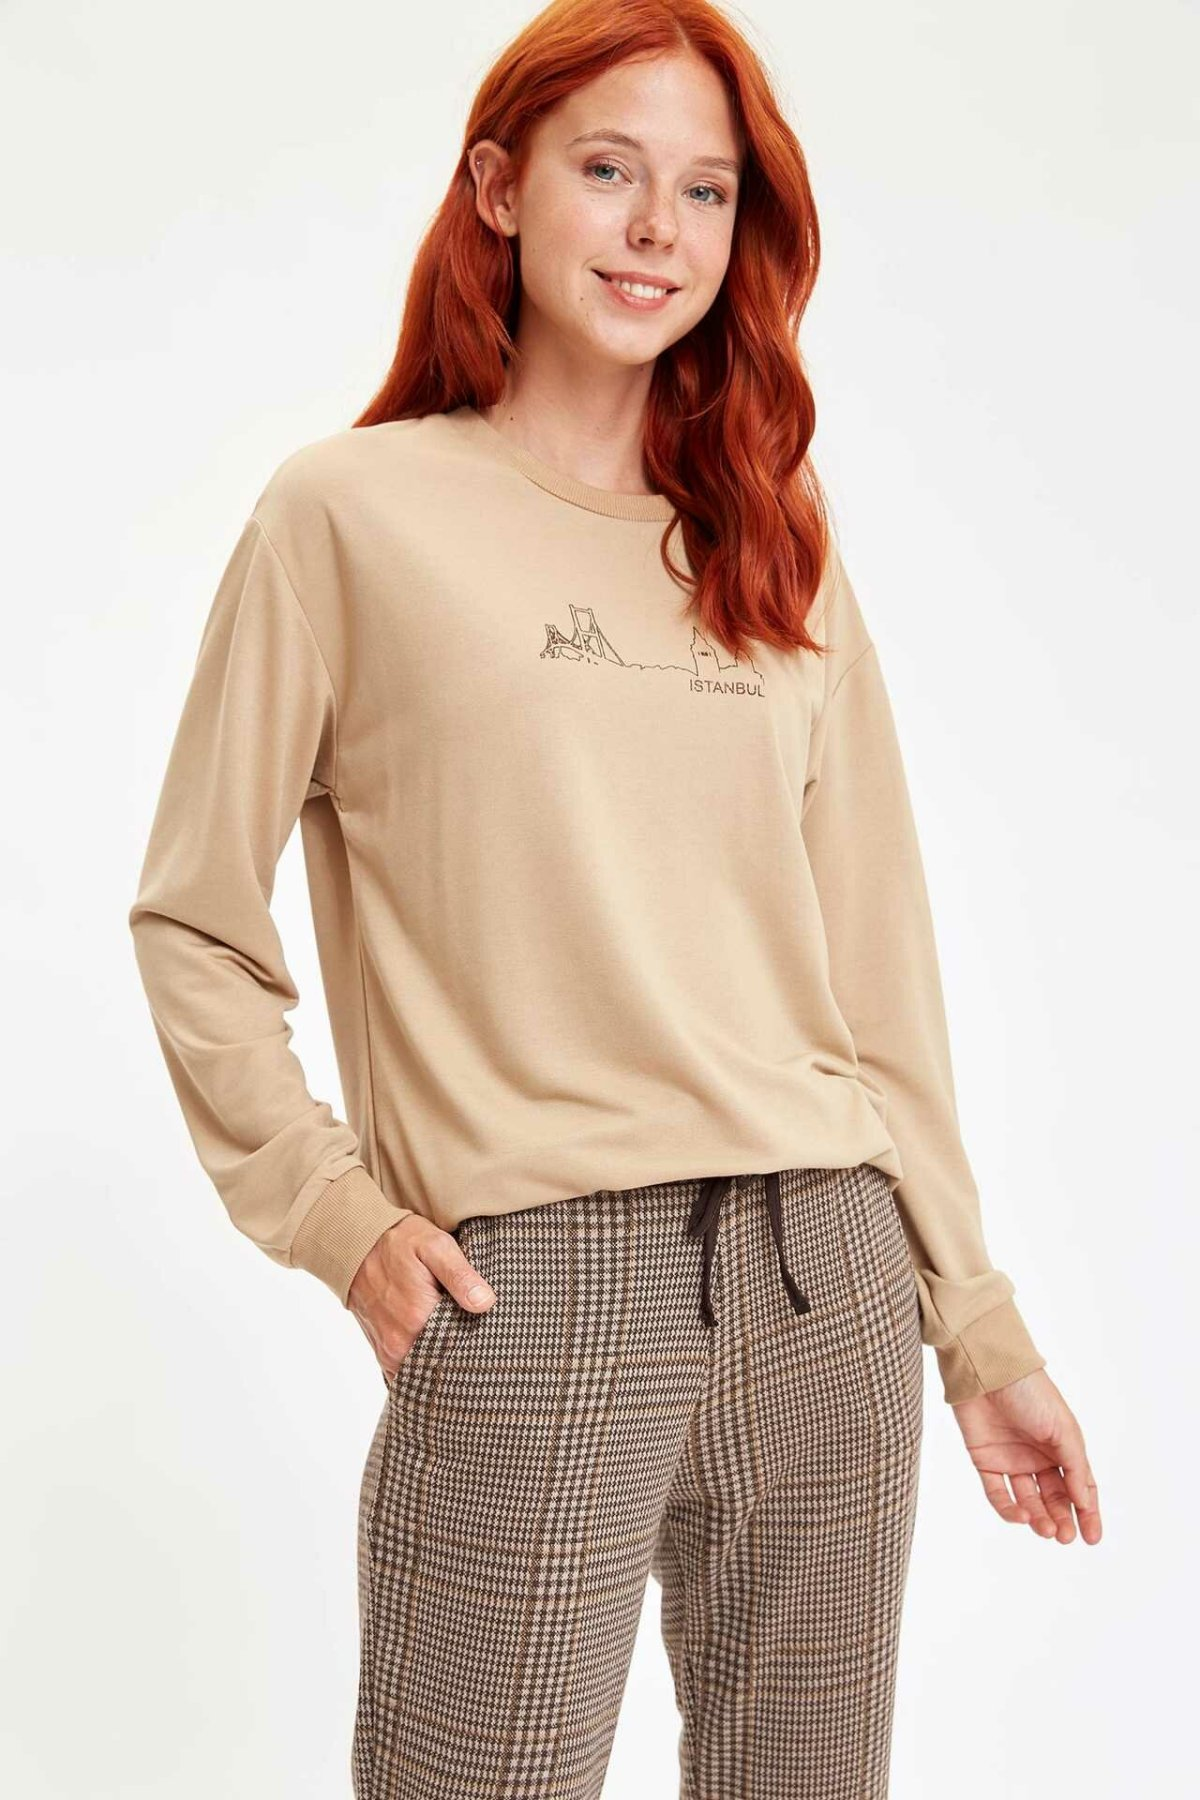 DeFacto Woman Fashion O-neck Sweat Shirt Simple Pattern Casual Pullovers Lady Long Sleeves Loose Tops Autumn New - L9559AZ19AU